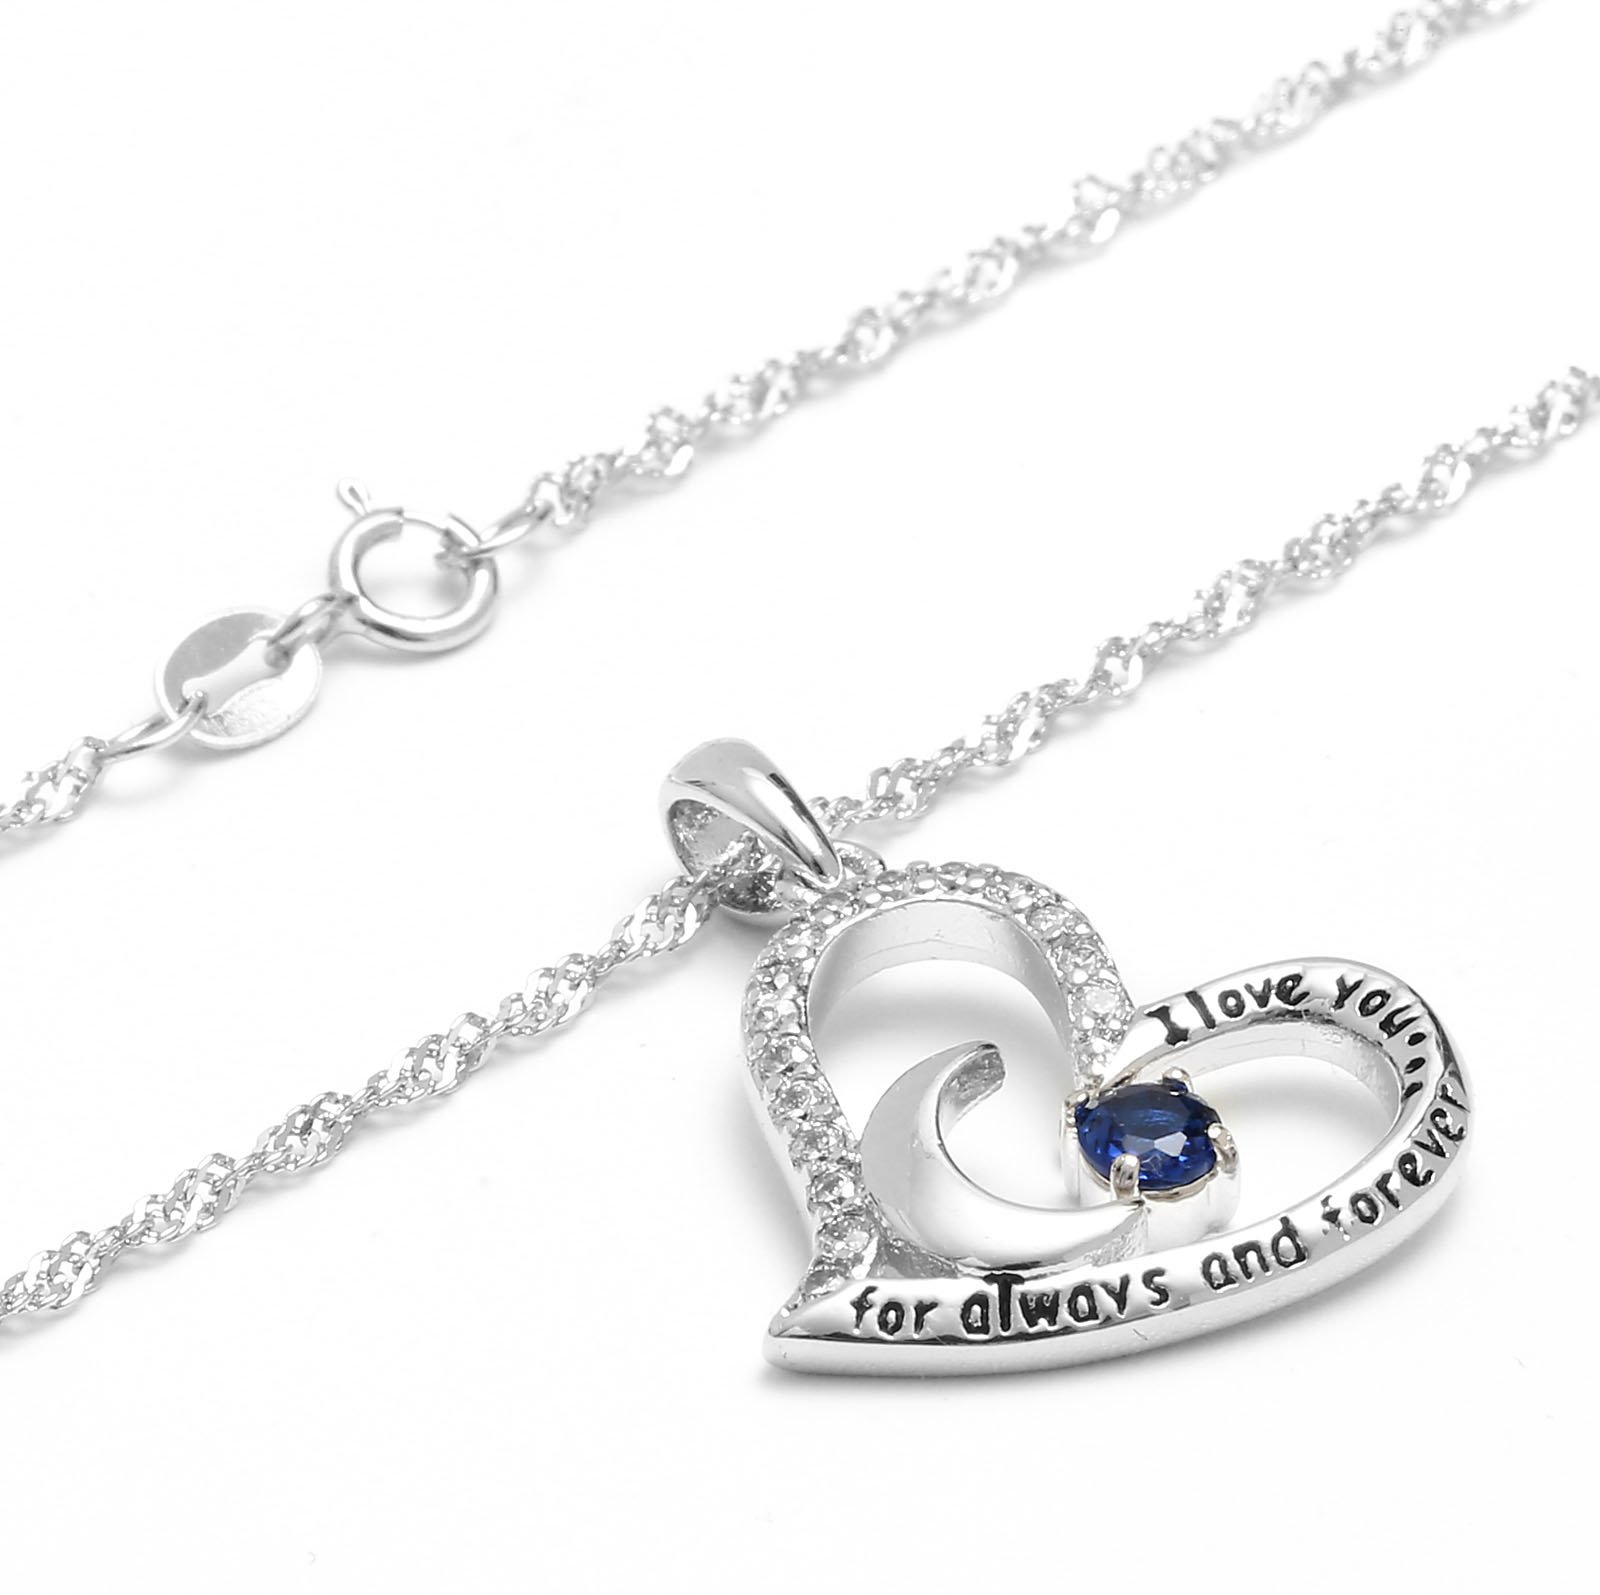 Valentine's Day Gift Fine Jewelry Gift Sterling Silver Heart Pendant Necklace Birthday Necklace I Love You For Always and Forever Dancing Birthstone (09-September-Sapphire) by Anna Crystal Jewelry (Image #2)